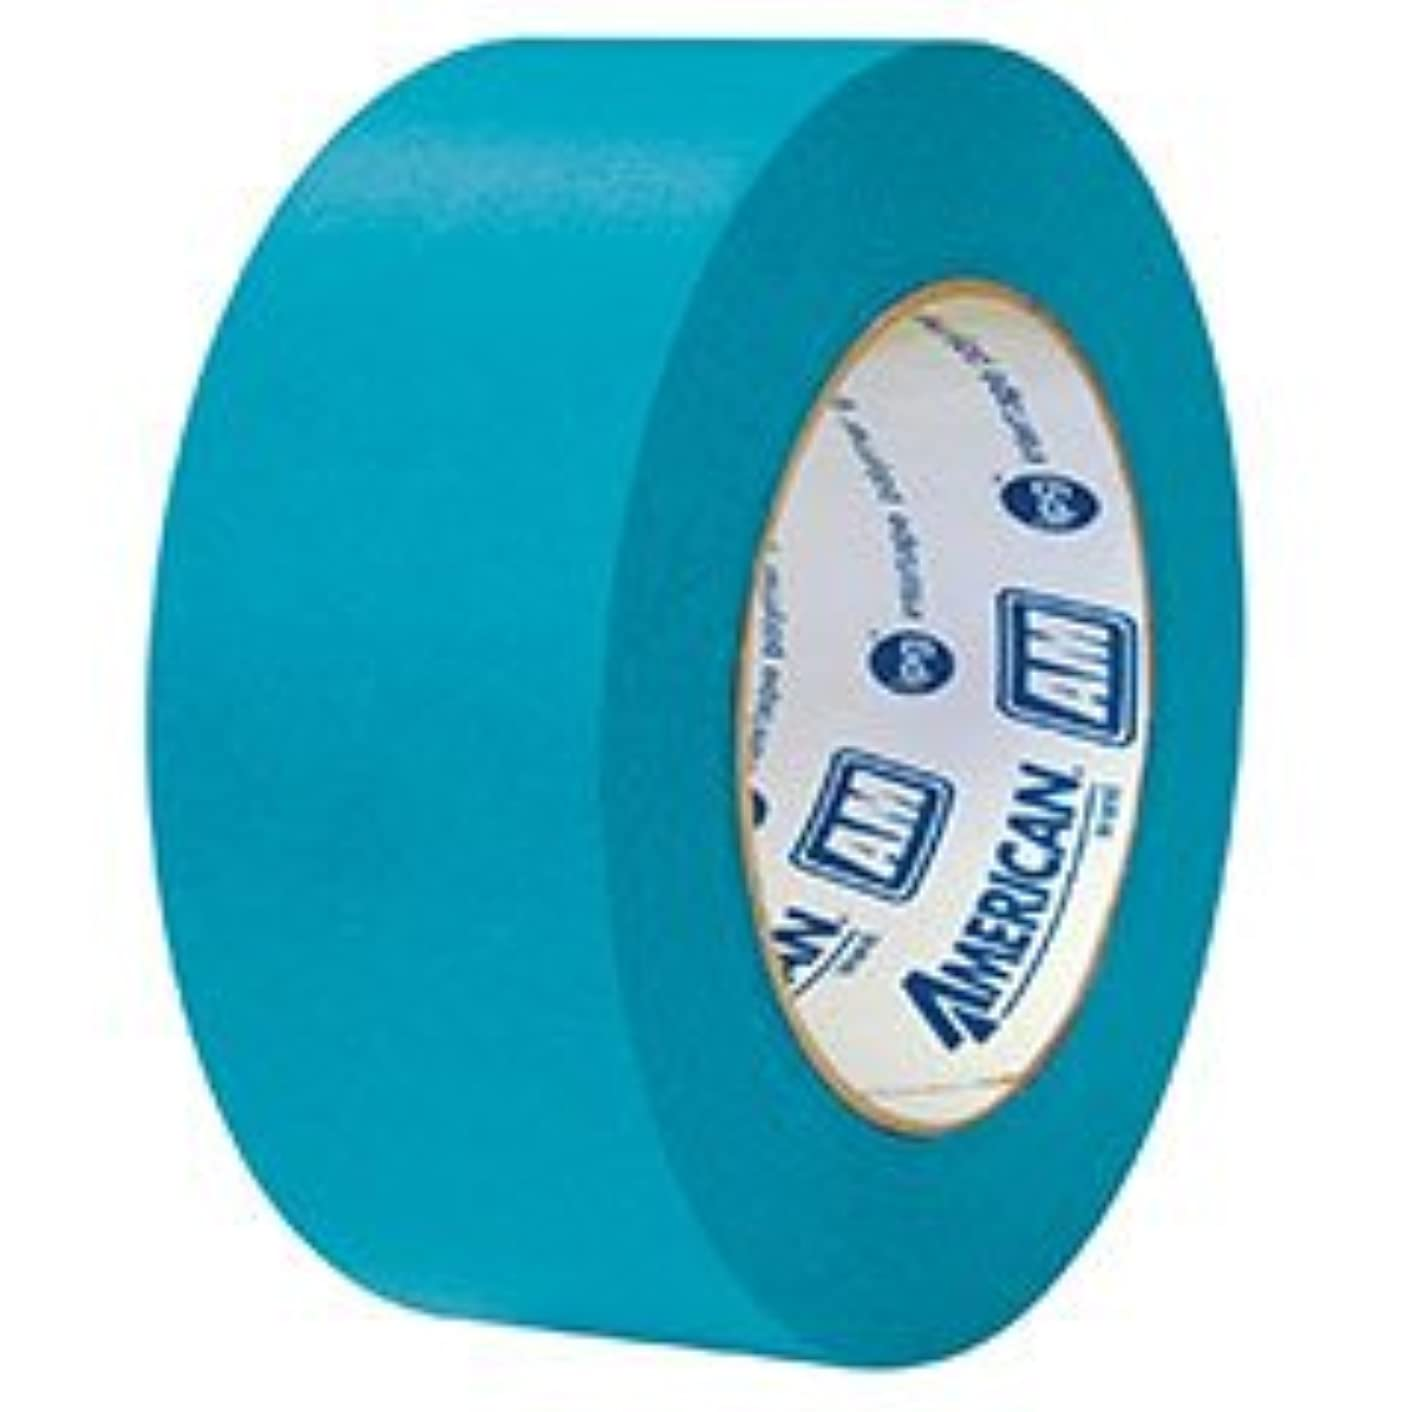 Intertape AM AquaMask Medium Temperature Masking Tape: 1 in. x 60 yds. (Aqua)